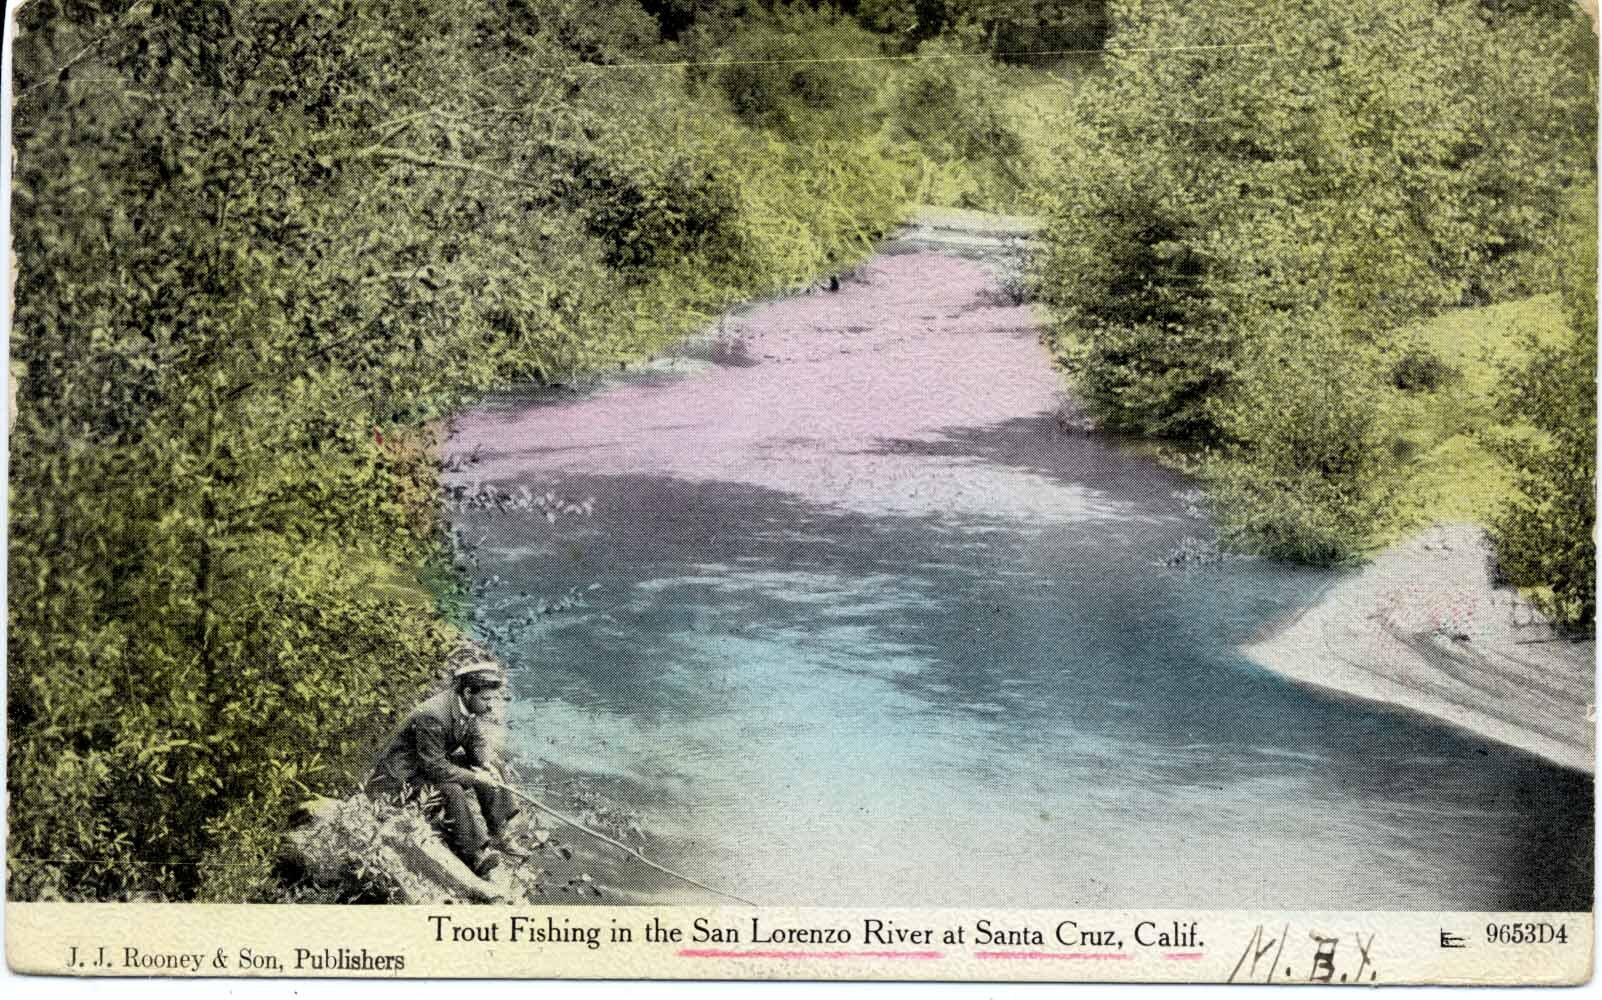 A citizen escapes the pressures of 1915 Santa Cruz with some quiet time on the San Lorenzo River. Photo courtesy The Santa Cruz Museum of Art and History. Thanks to Marla Novo.